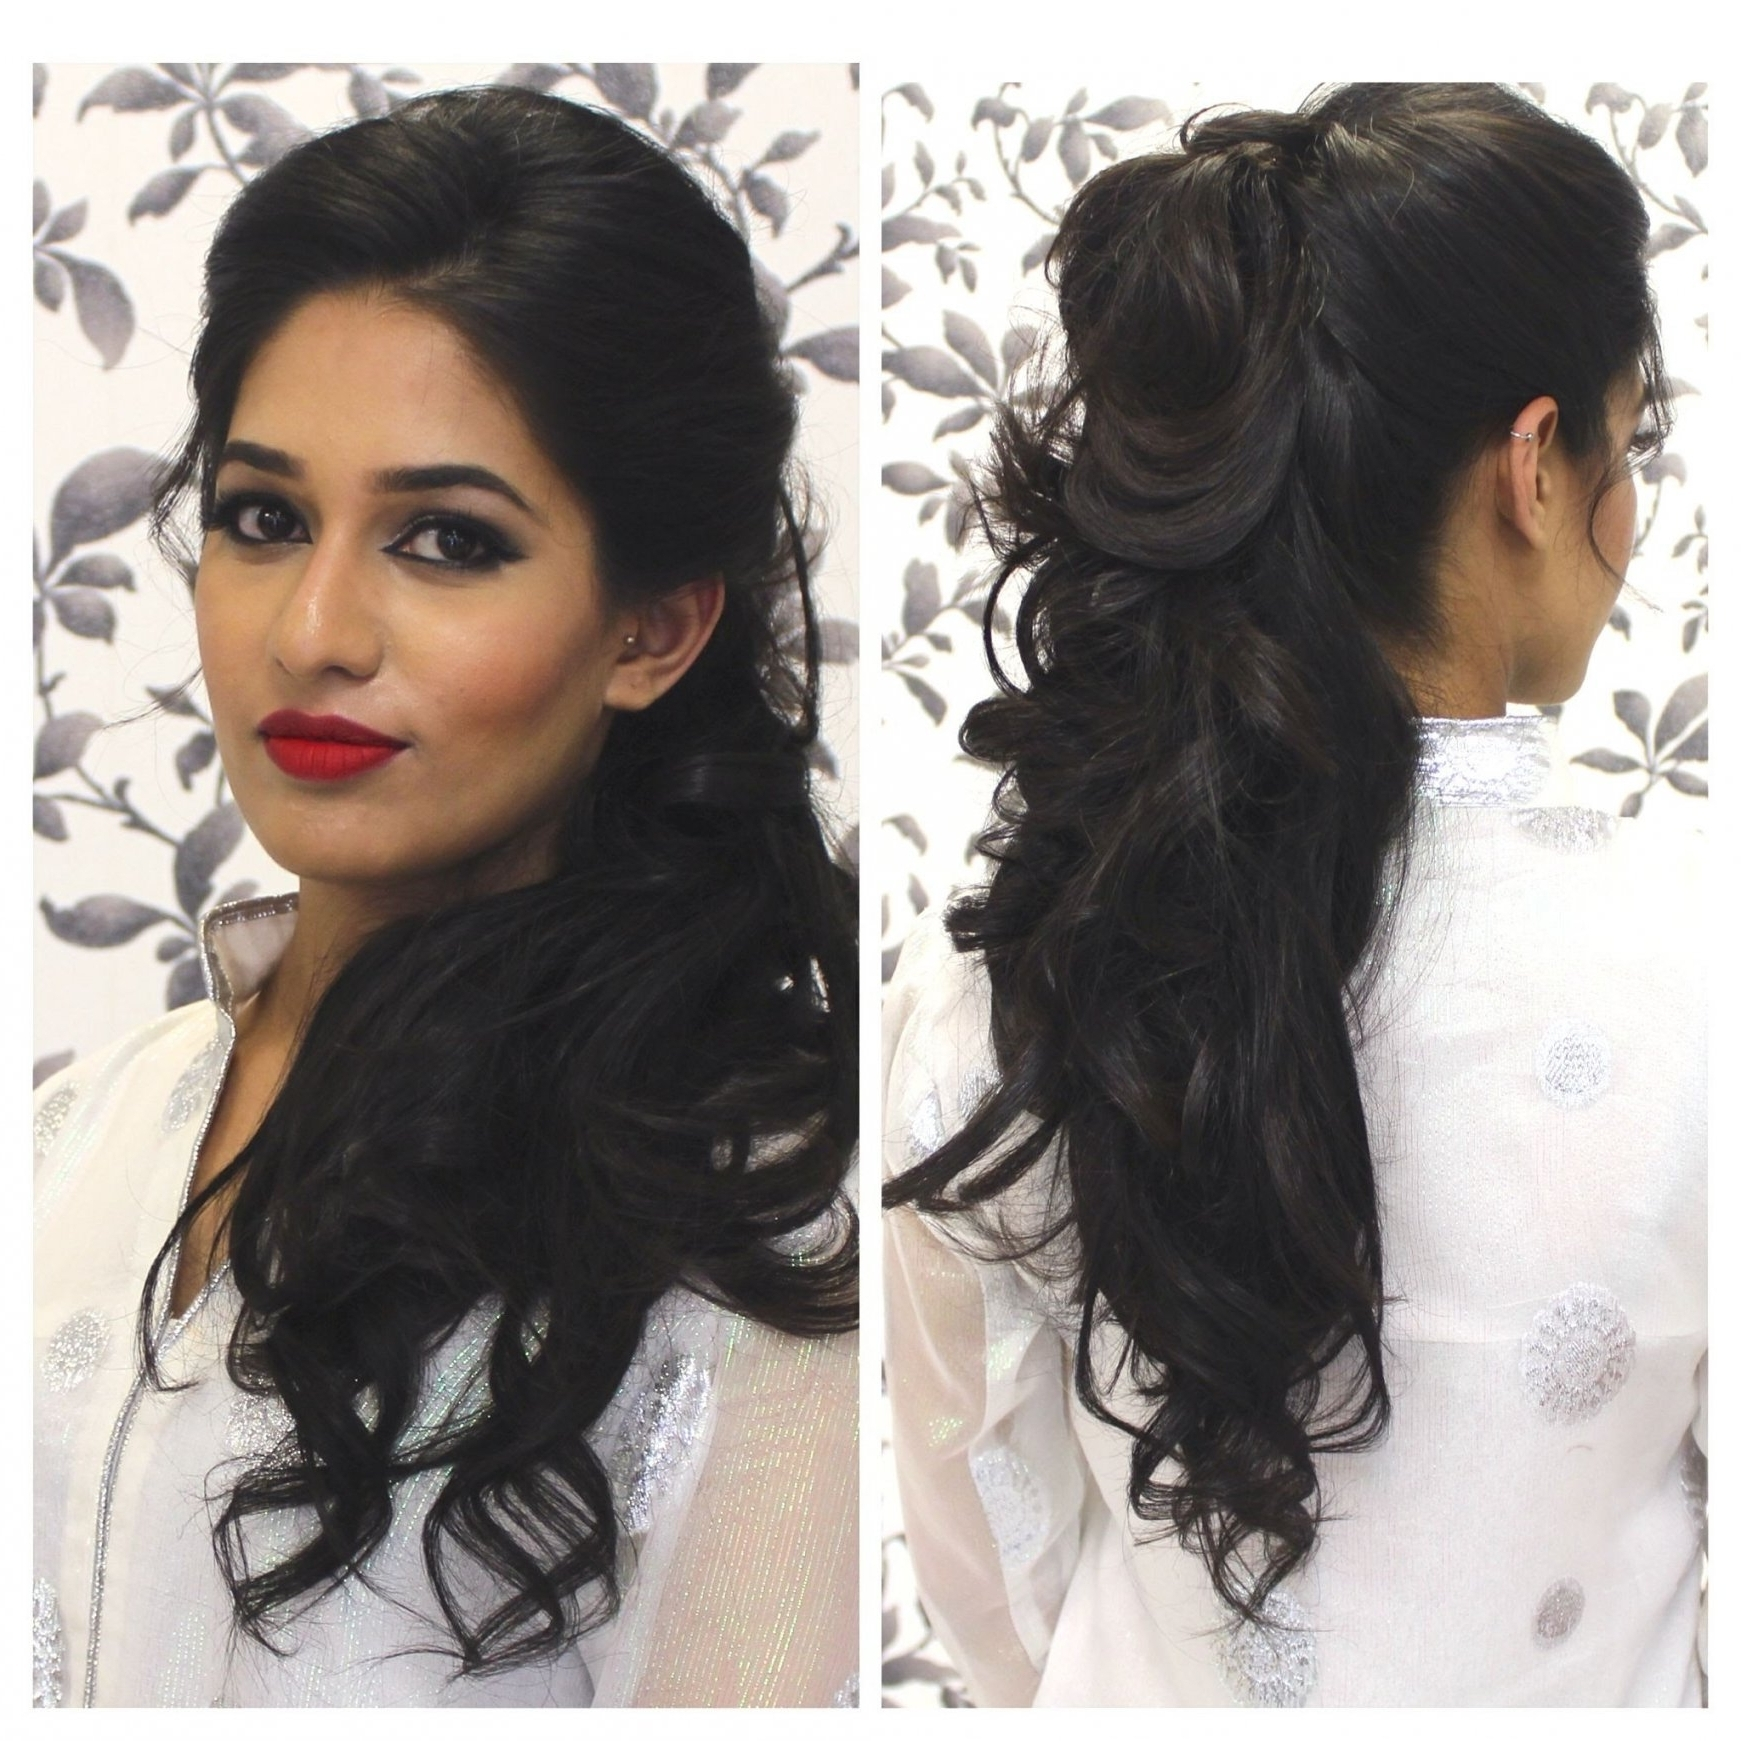 Recent Indian Wedding Hairstyles For Short And Thin Hair Throughout Black Wedding Hairstyles For Short Hair For Indian Girl Tutorial (View 12 of 15)